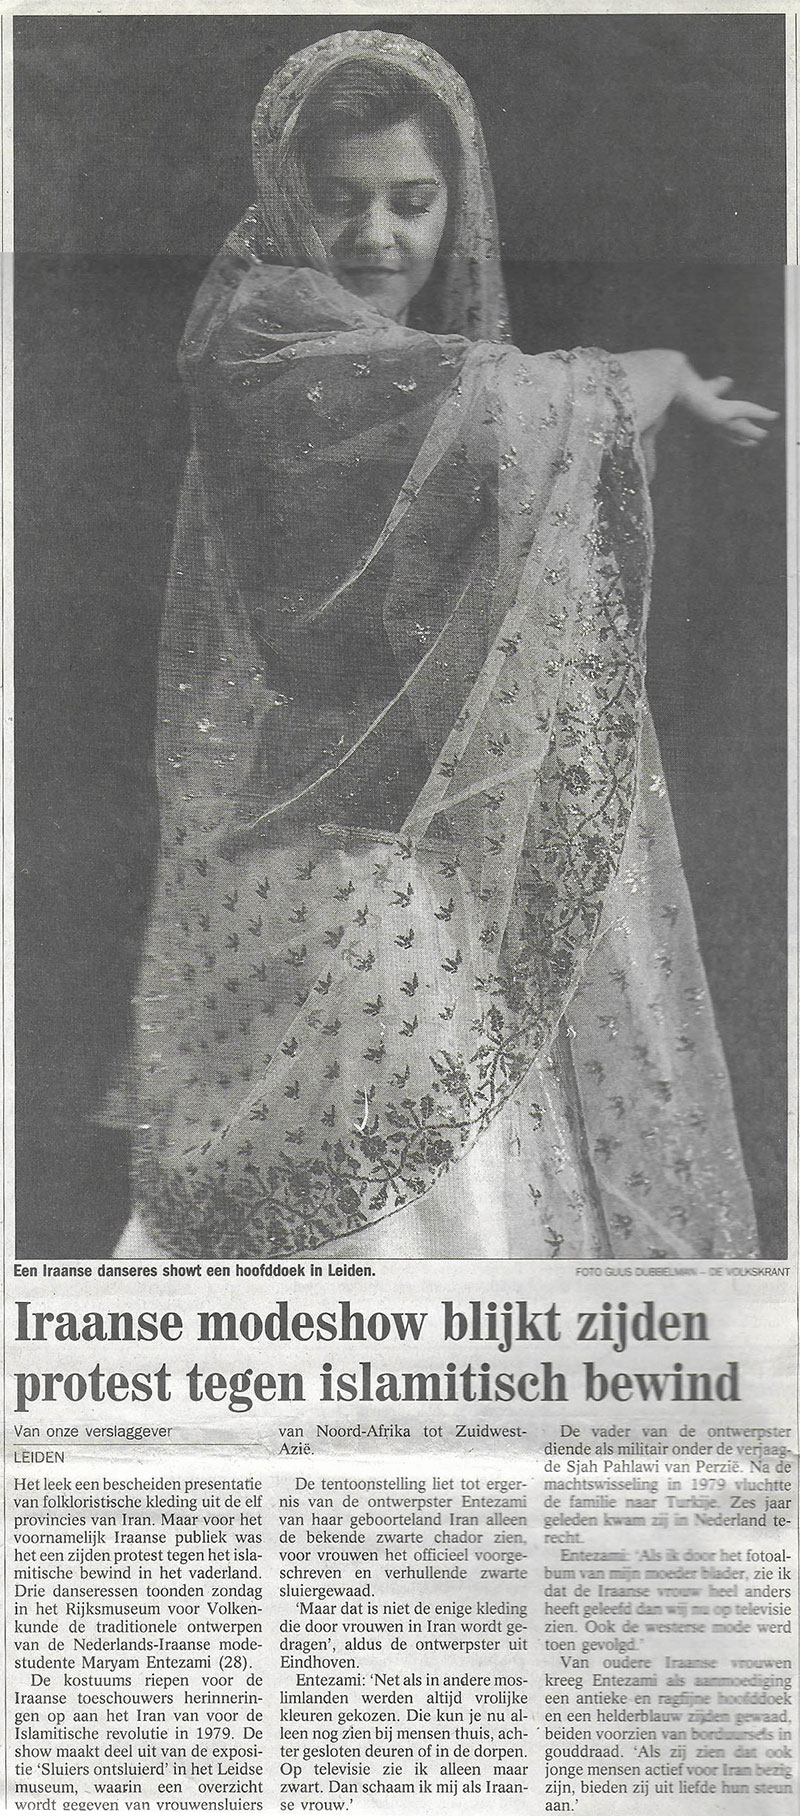 Volkskrant, Netherlands, 1999, News & Press - Historic Persian Fashion Design & Research